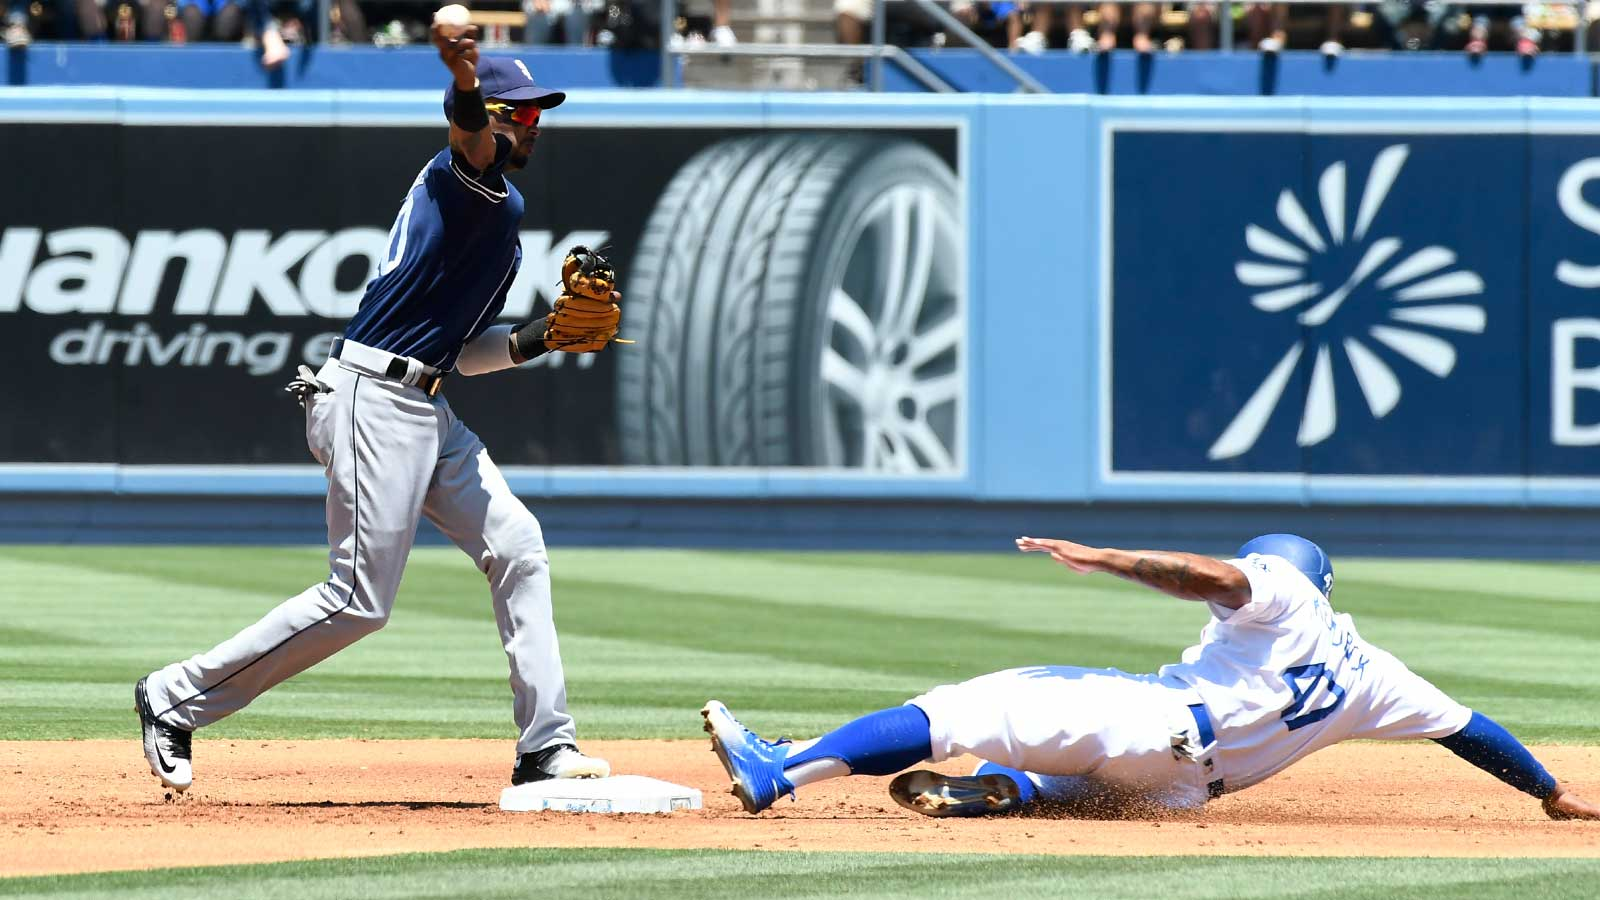 Padres fall to 6-23 in day games, lose 3-1 to Dodgers